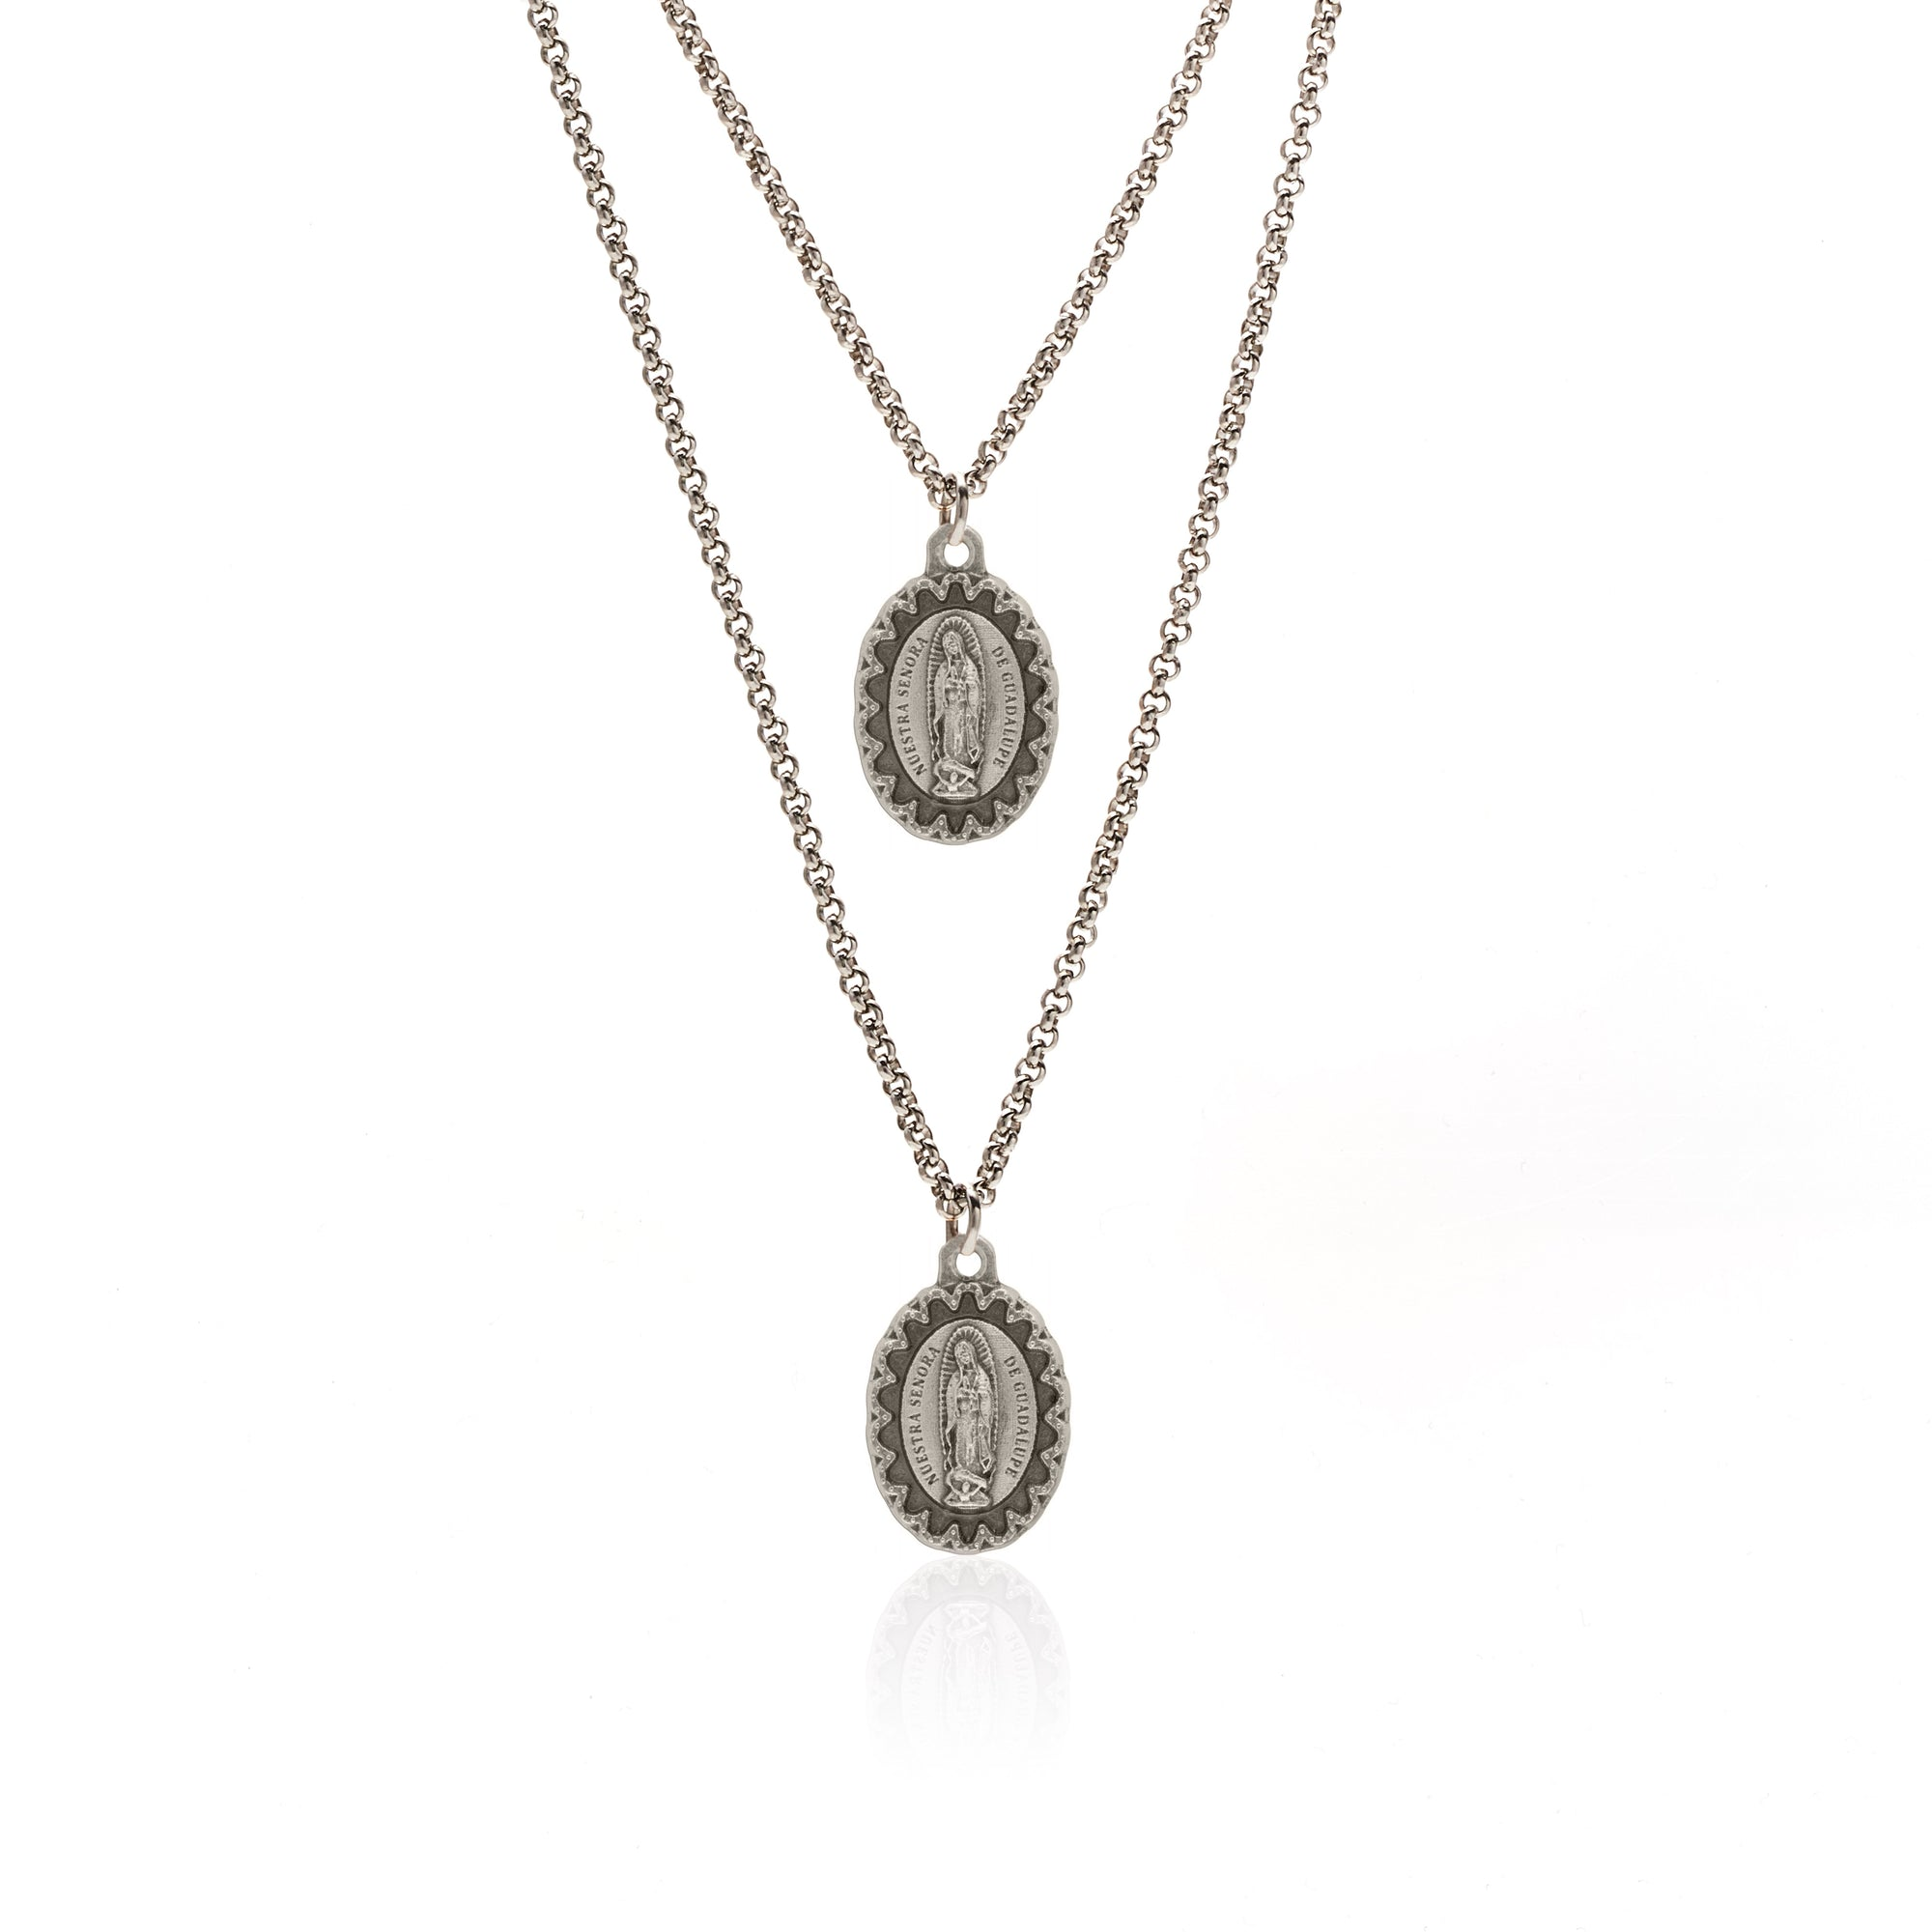 Silk&Steel Jewellery Silver Uplifting Necklace - Faithful